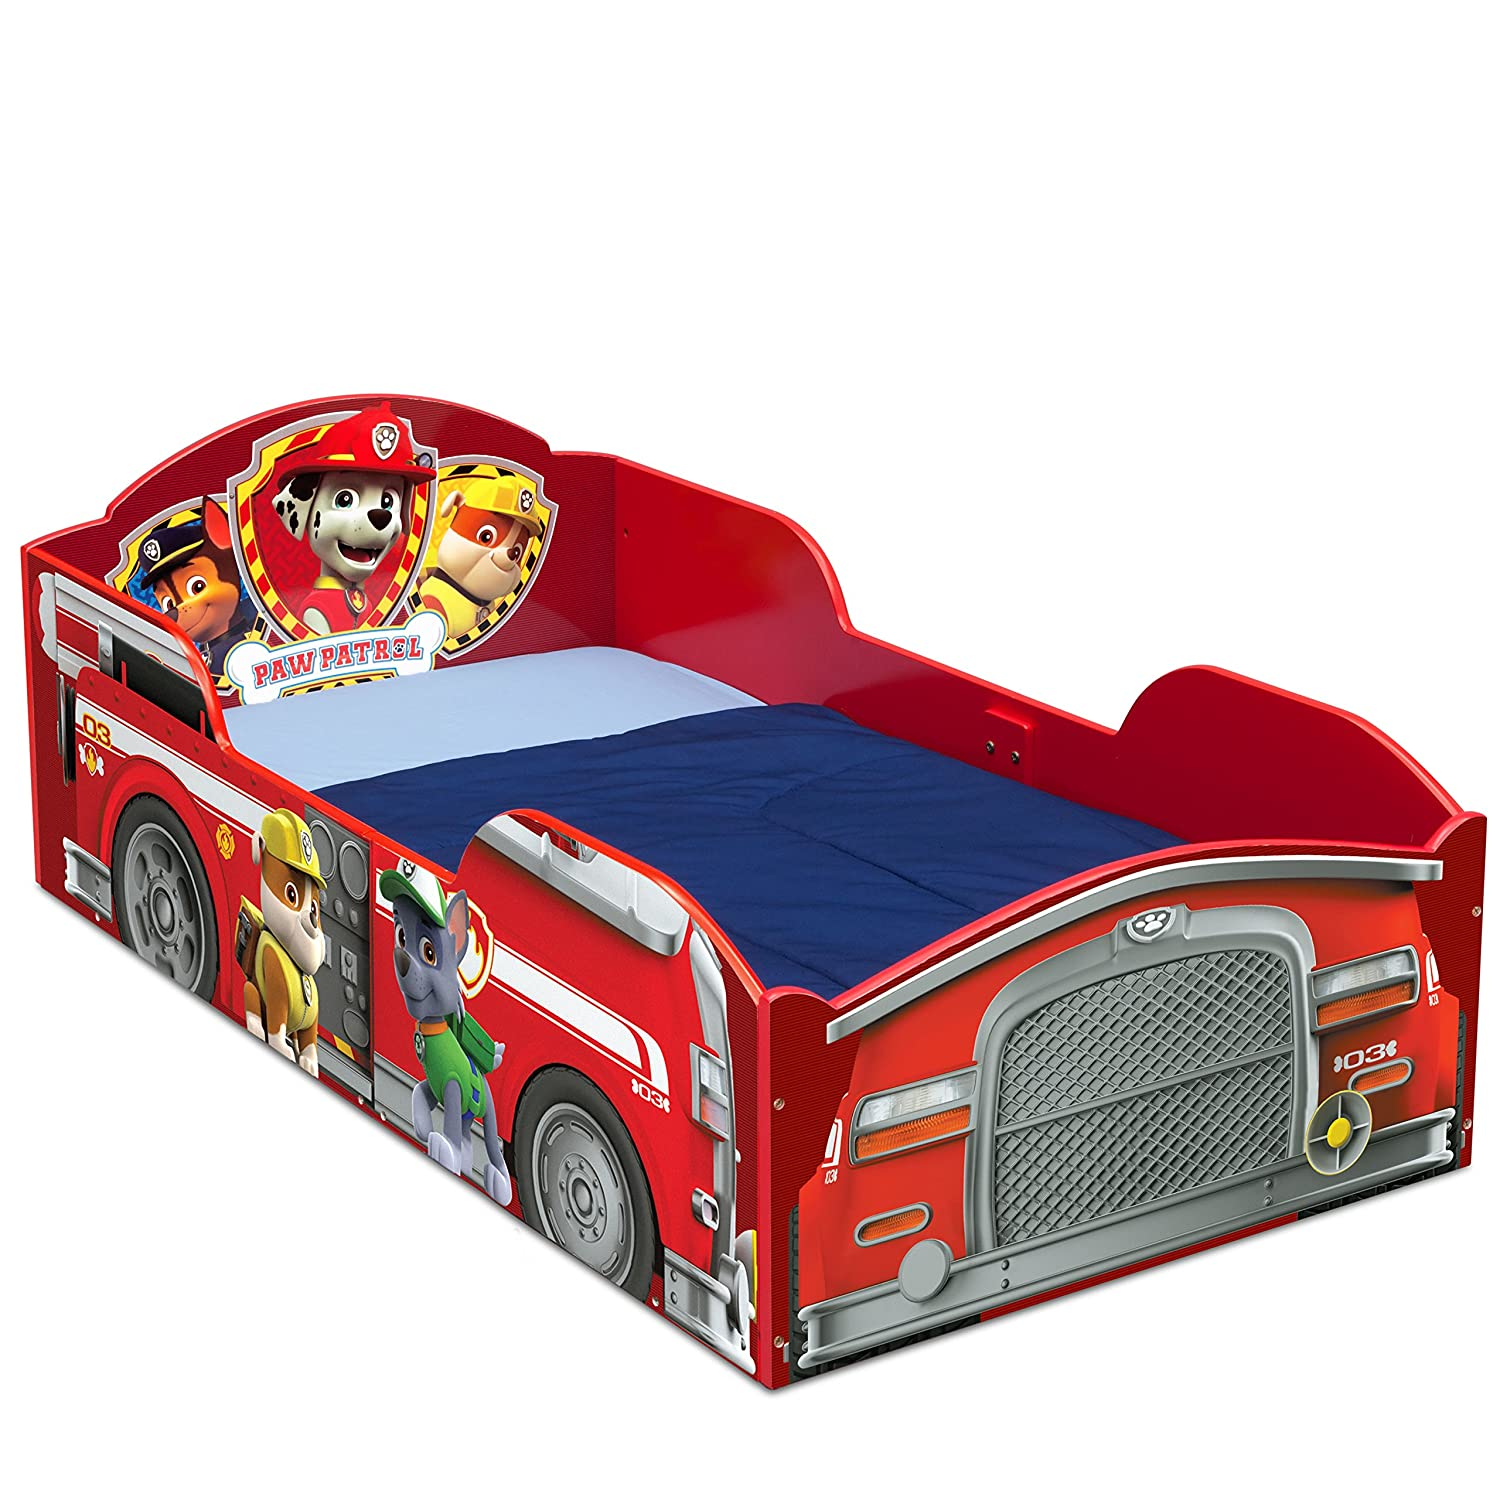 Amazoncom Delta Children Nickelodeon Paw Patrol Safe, Strong, And Sturdy